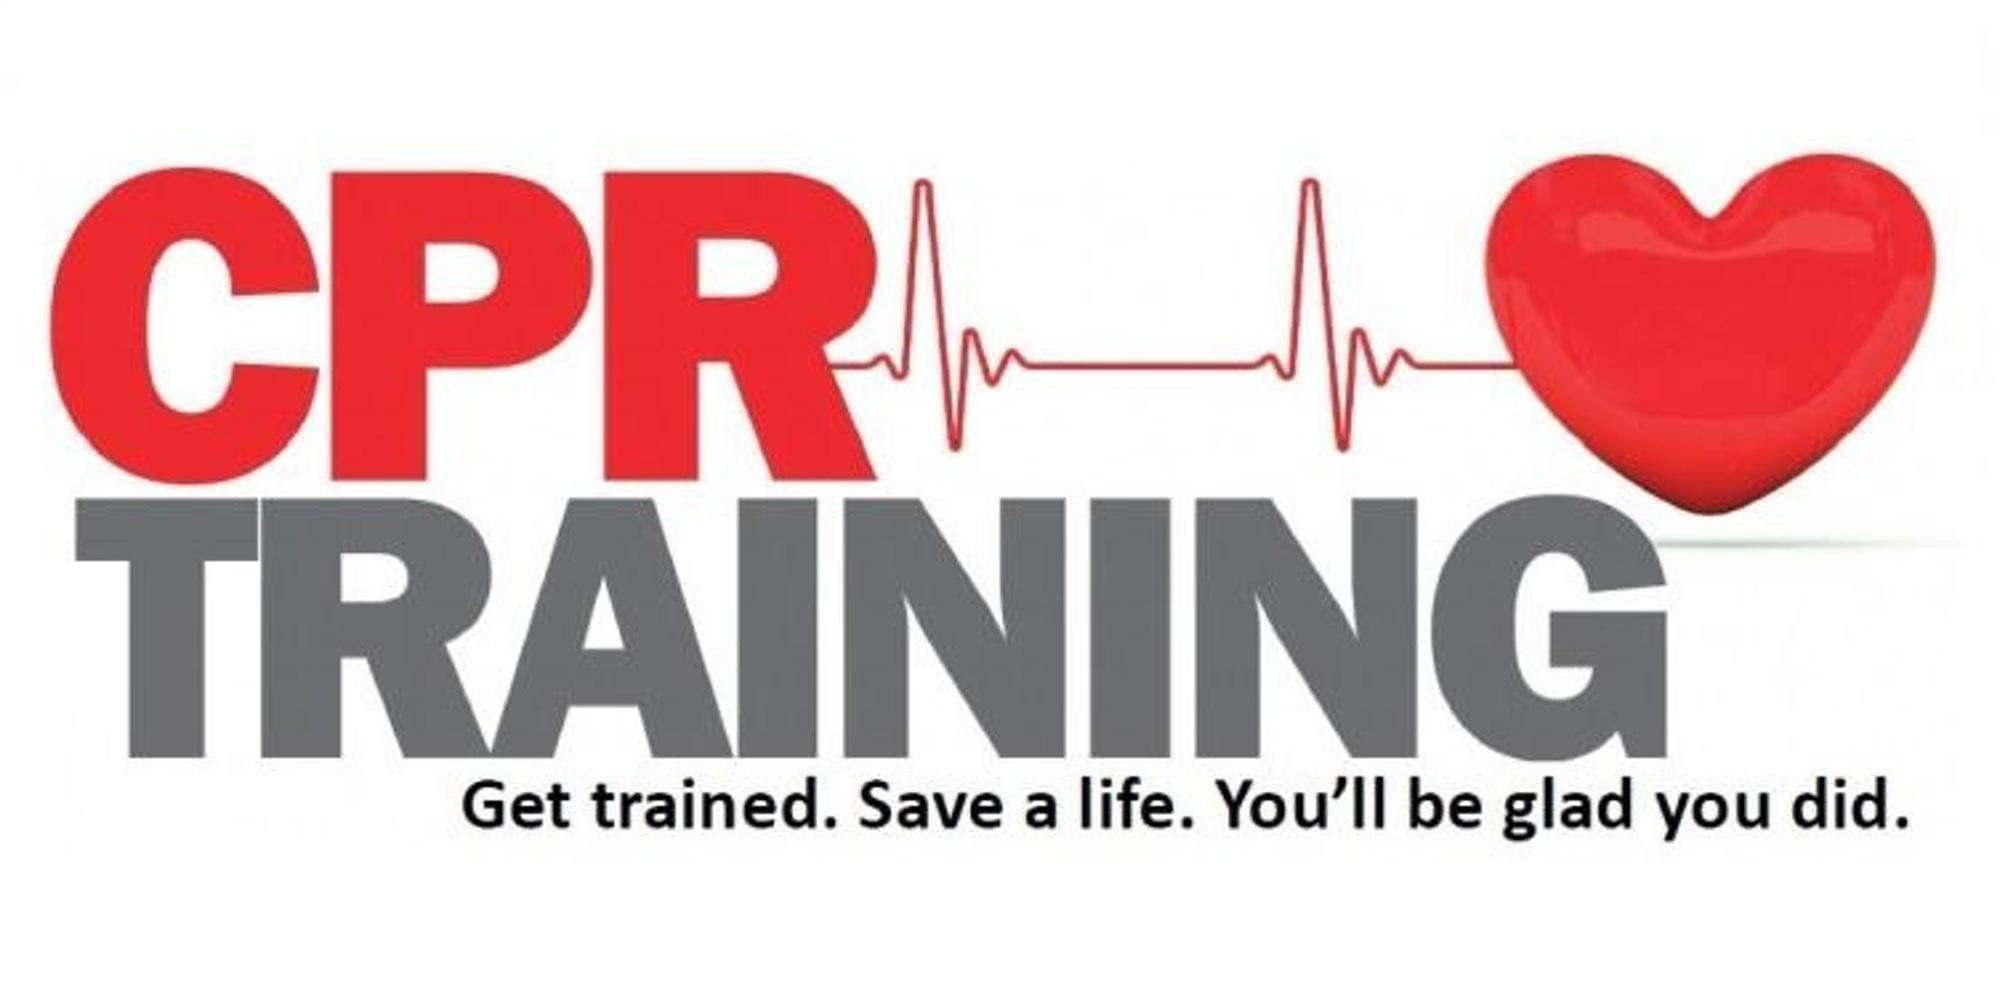 Cpr Certification Get Trained And Save A Life 3 Jun 2018